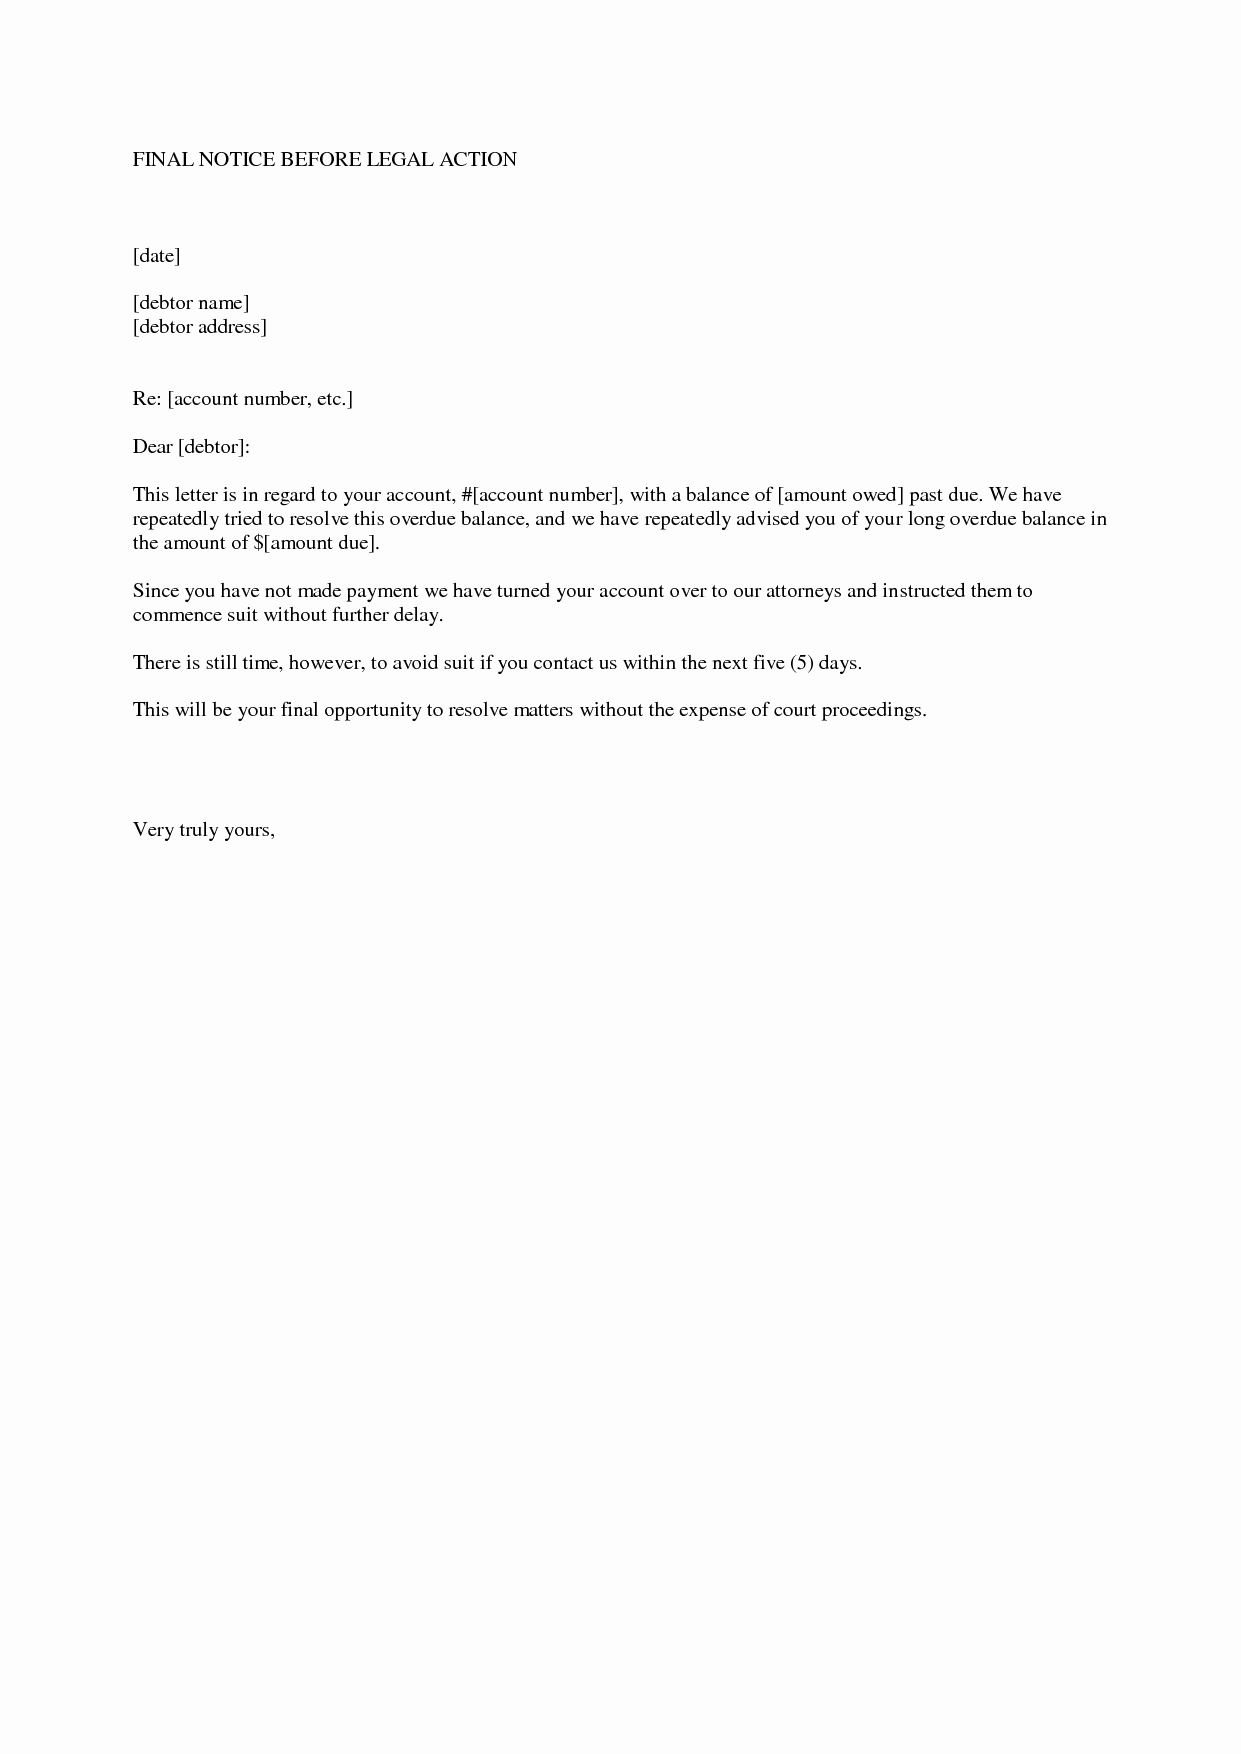 Collection Letter Template Final Notice Lovely Best S Of Notice Legal Action Letter Final